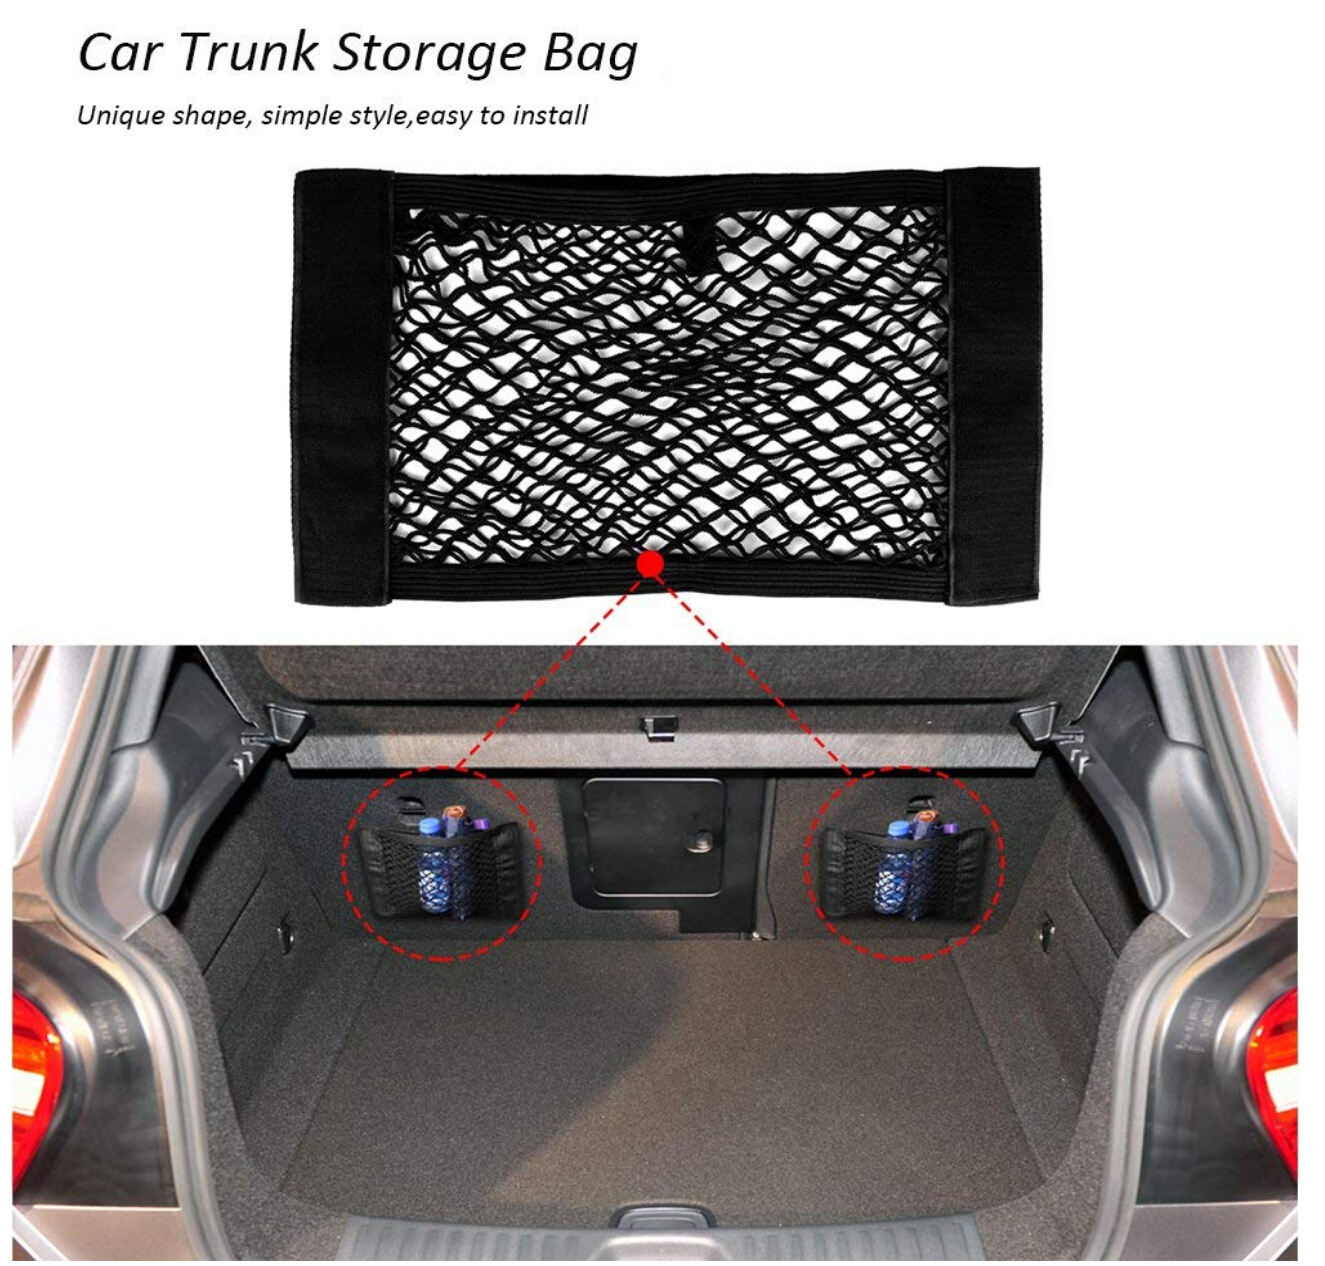 2018 NEW Hot Selling Car Accessories Car-Styling Trunk Storage Bag Stickers For Dacia